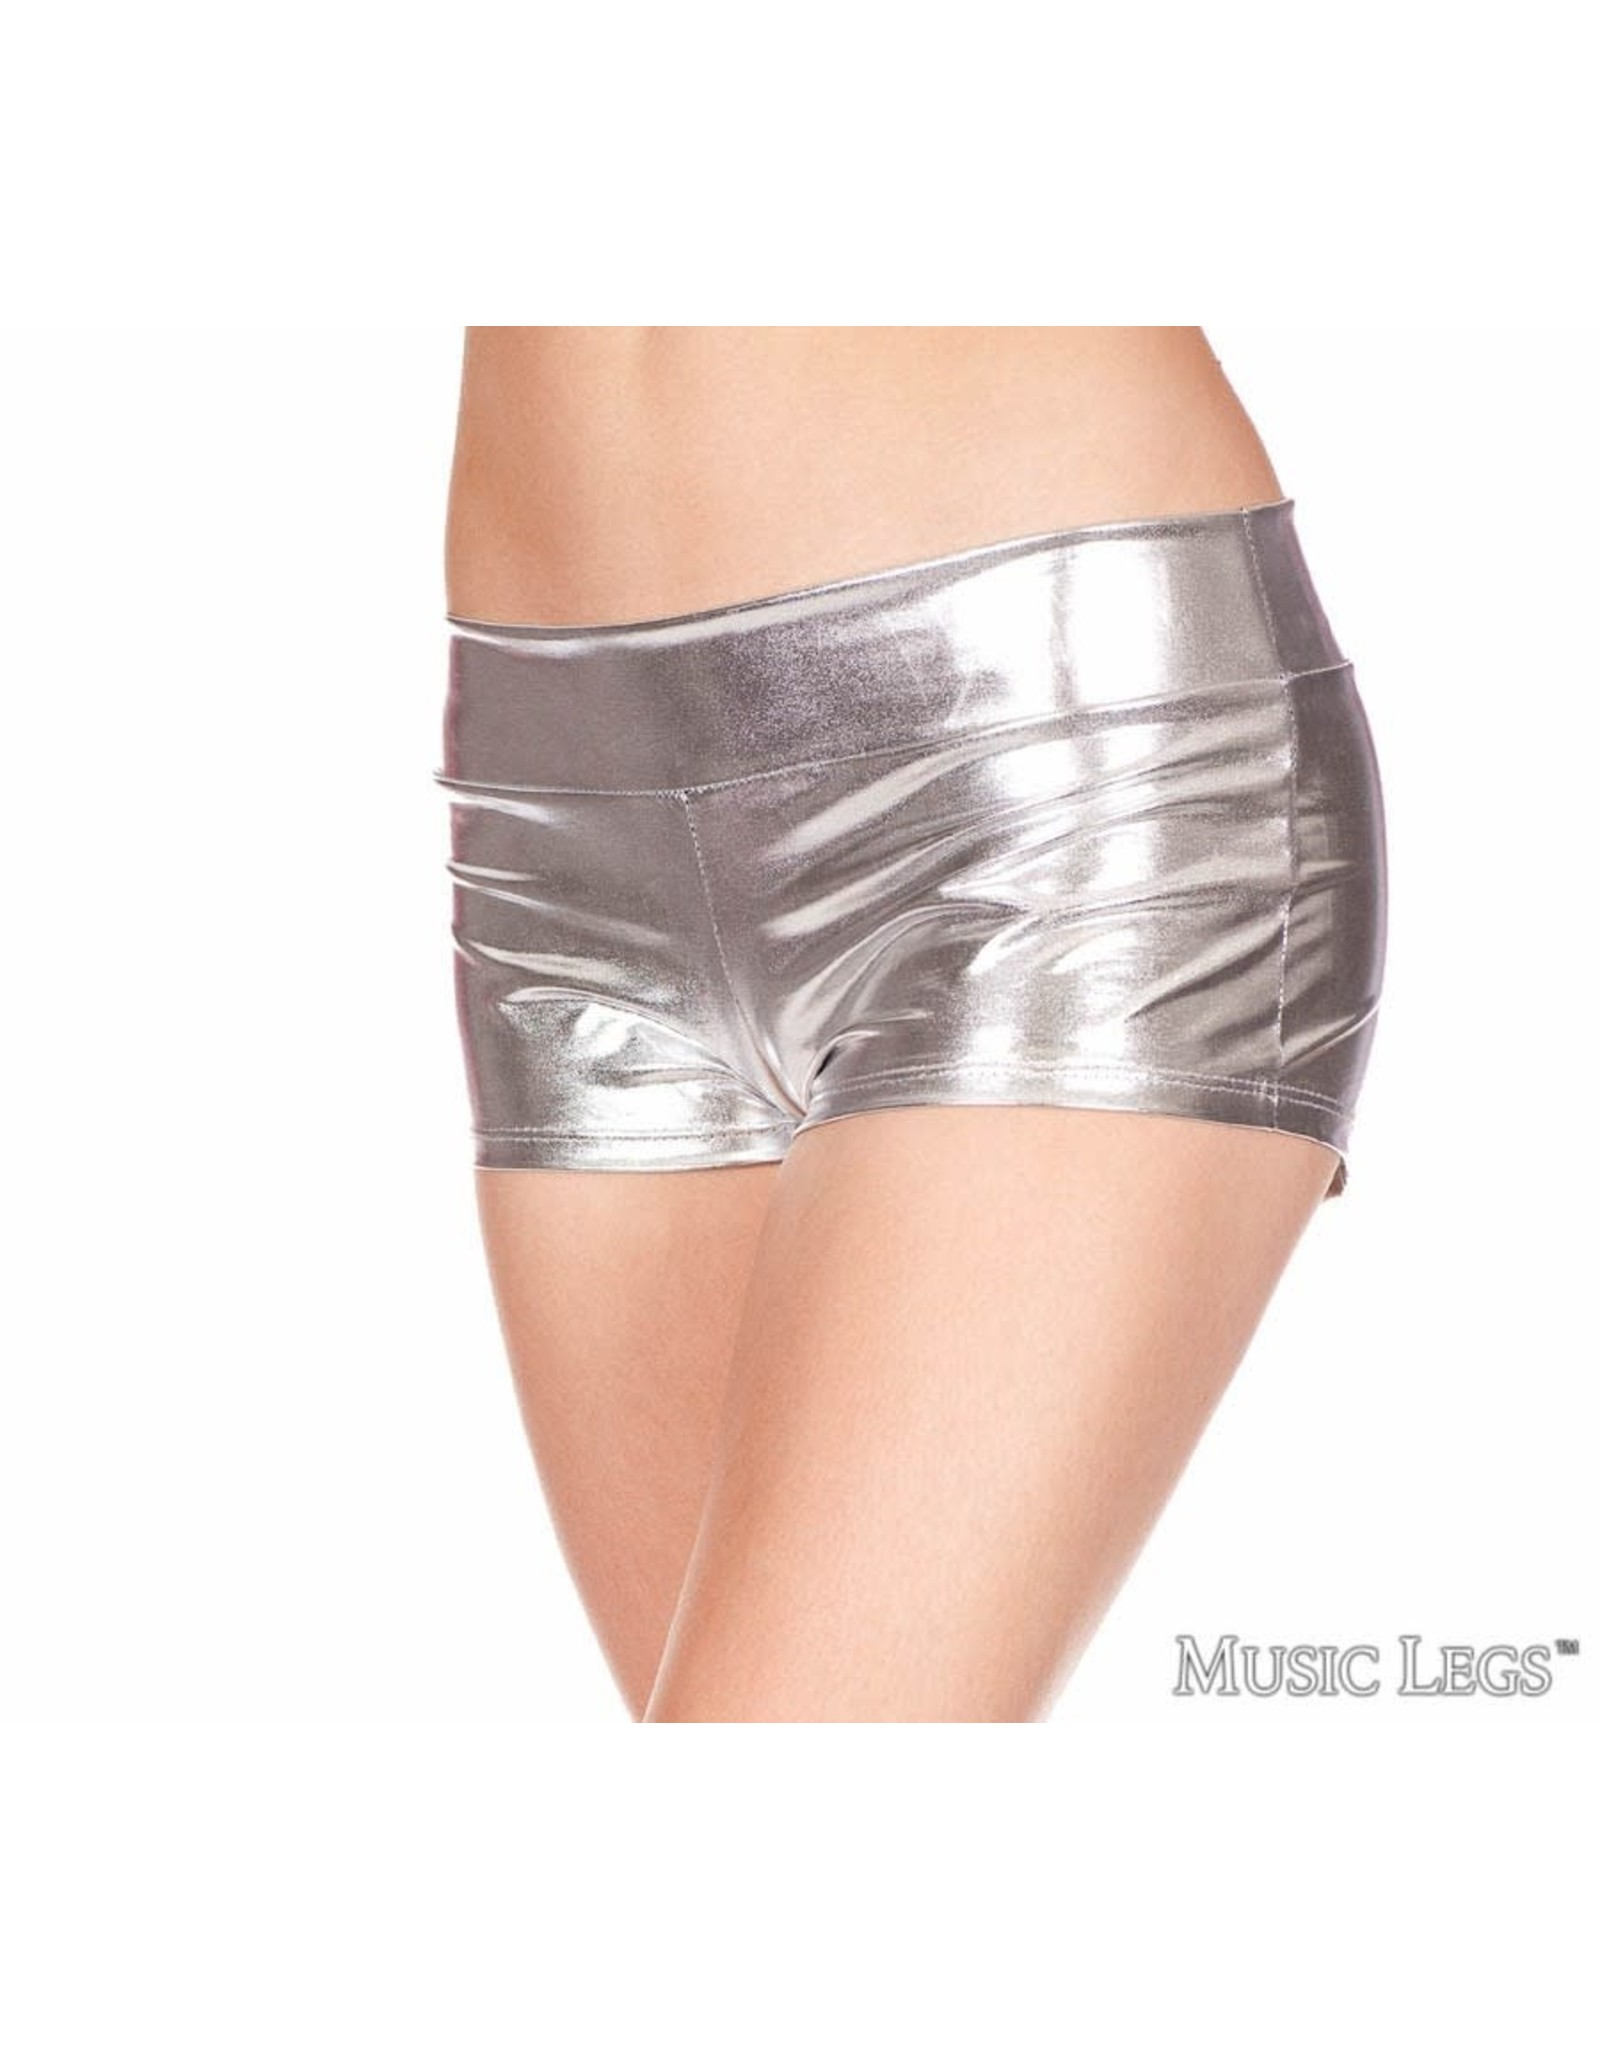 Booty Short W/ Banded Waist - Silver - OS